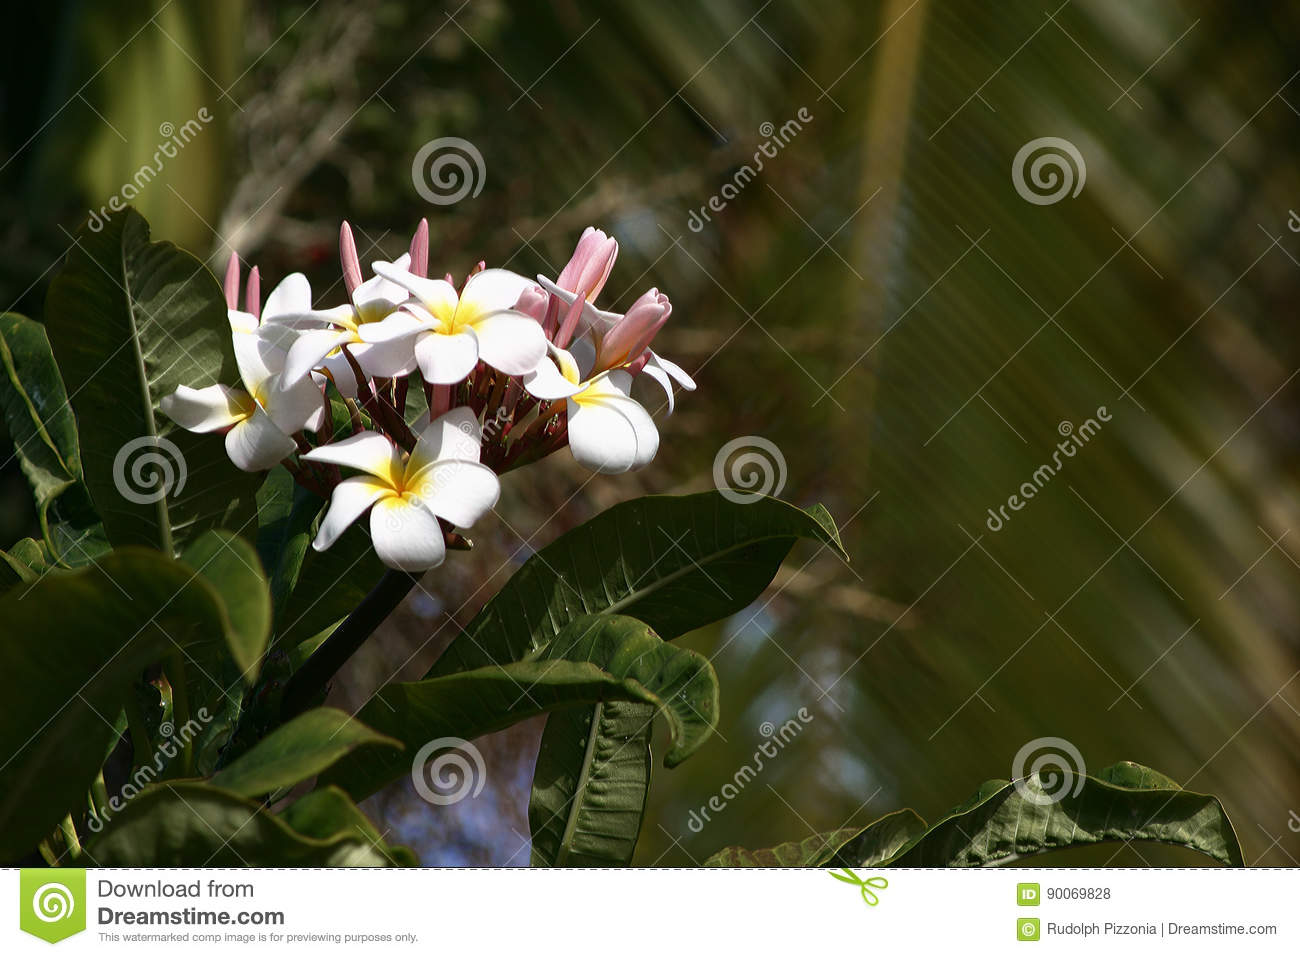 Hawaii plumeria flowers used in hawaiian leis stock photo image of hawaii plumeria flowers used in hawaiian leis izmirmasajfo